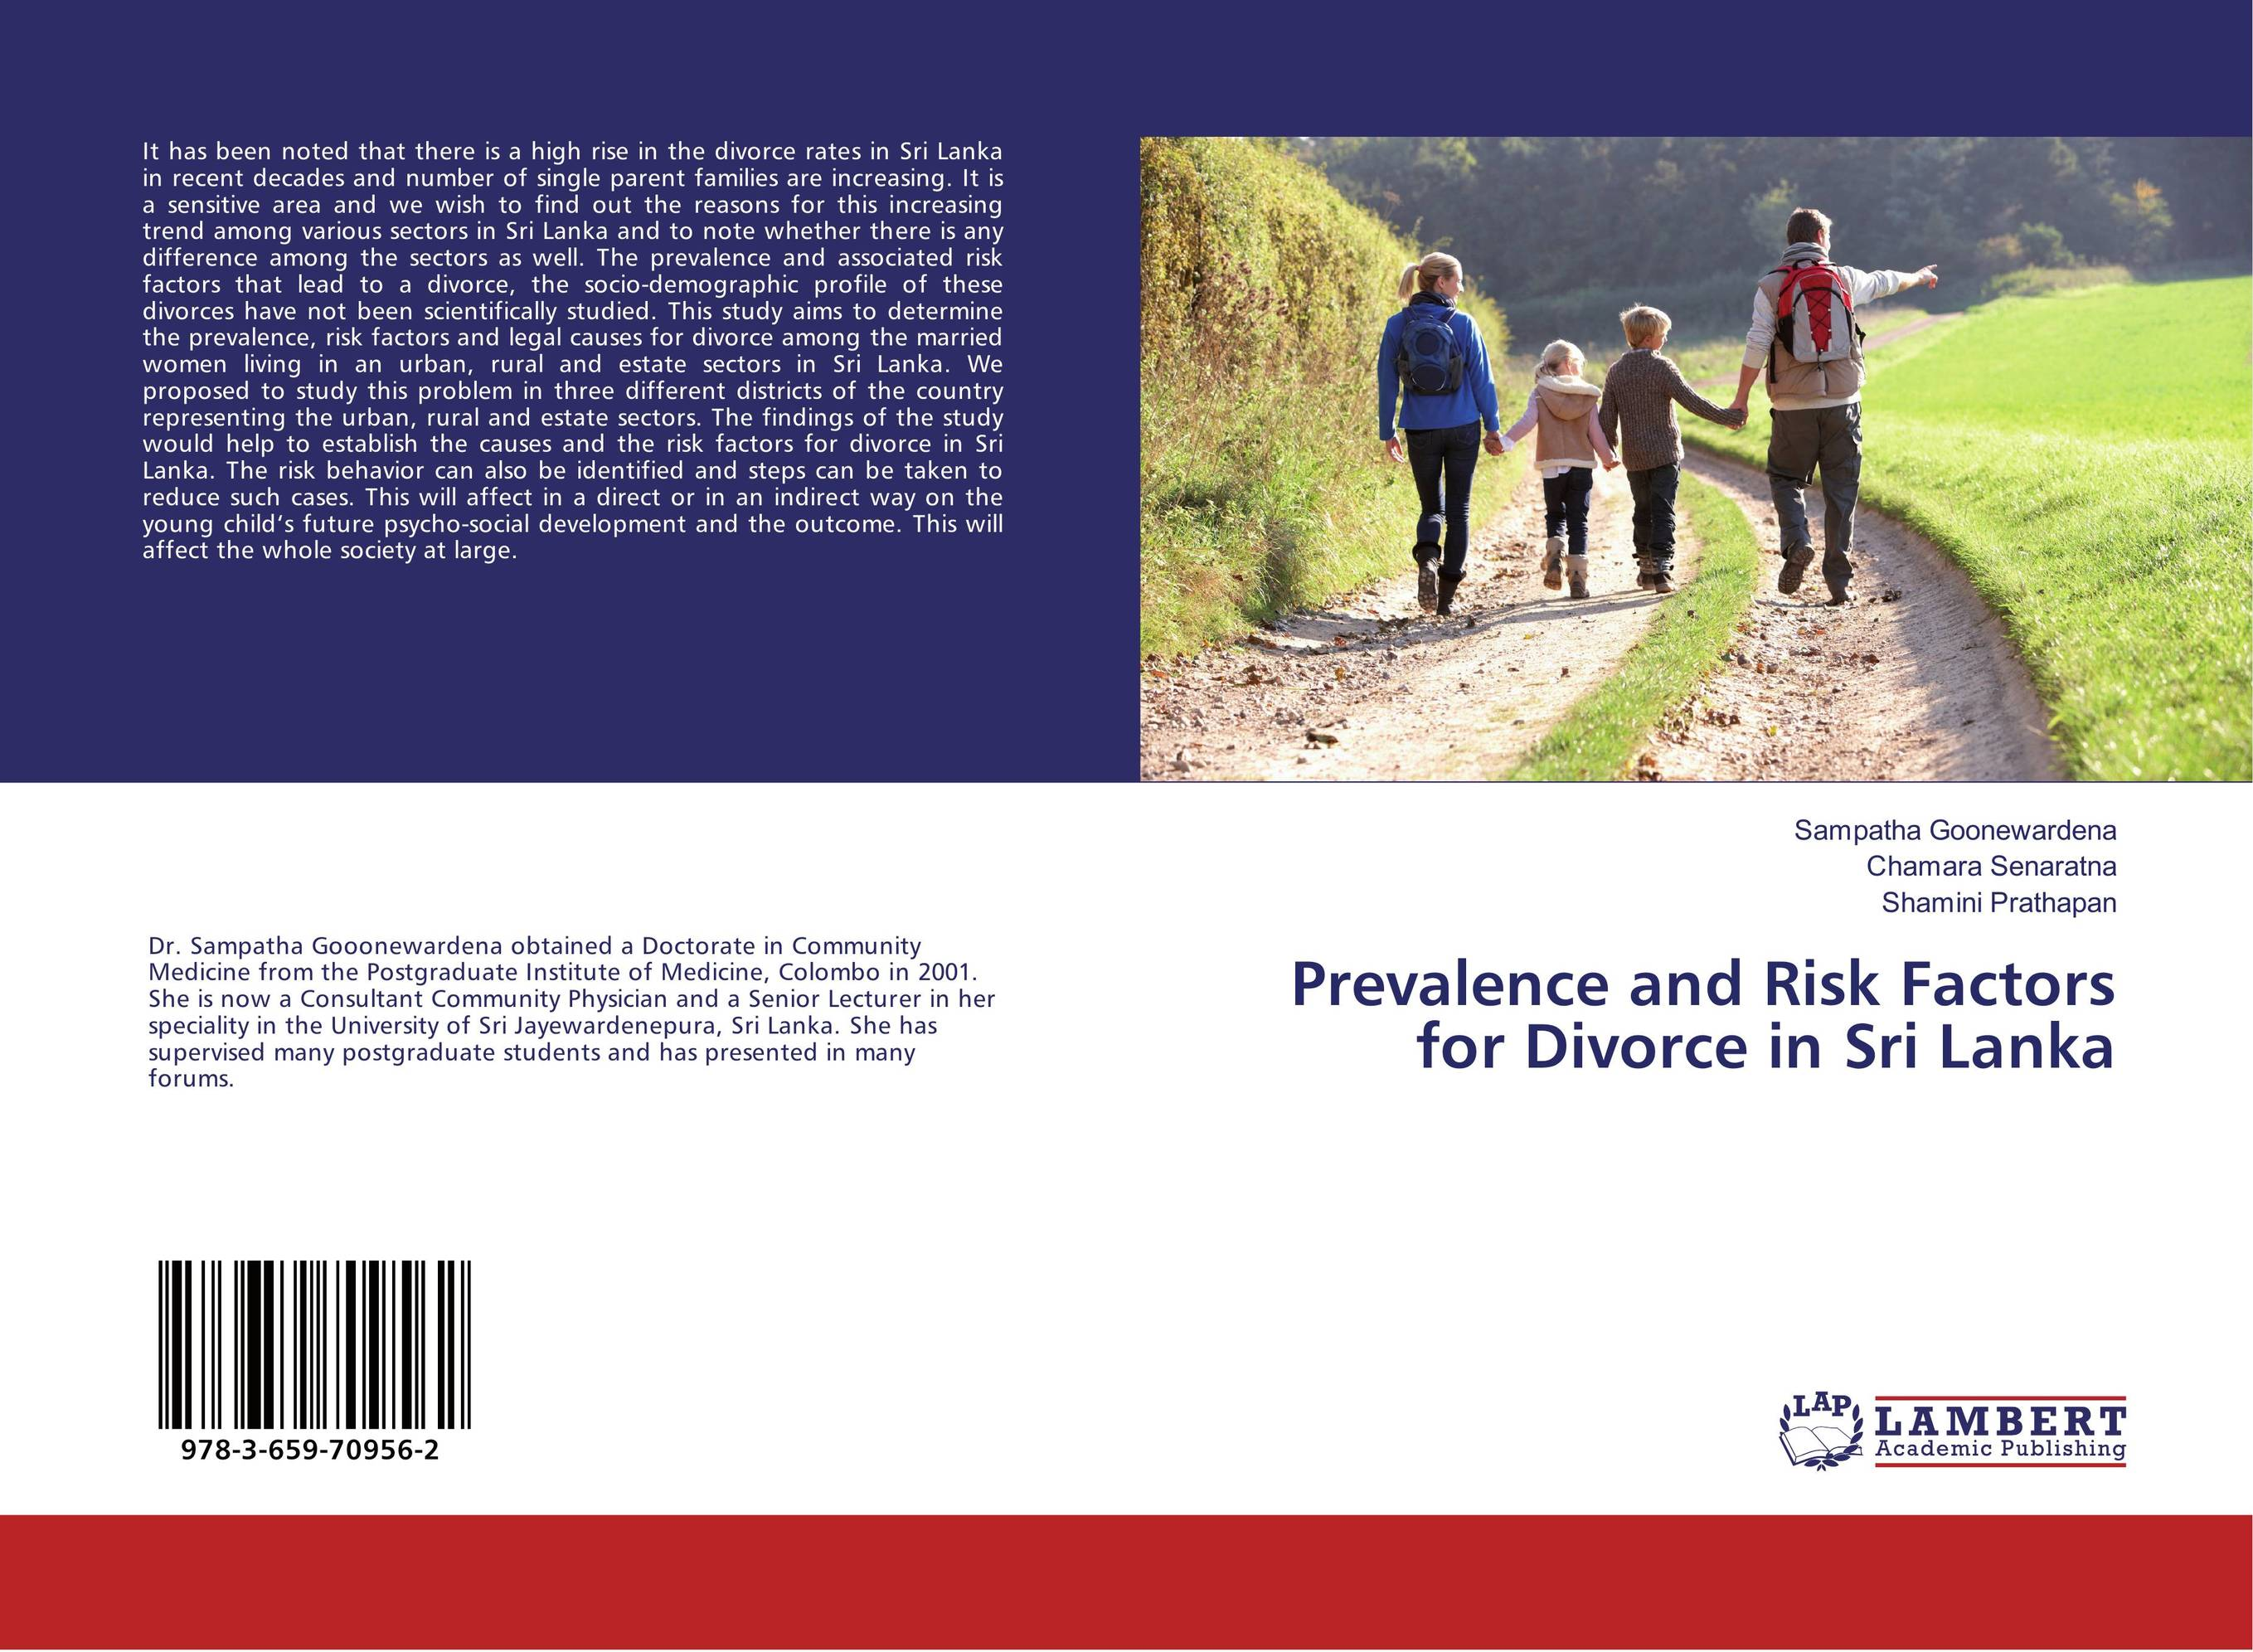 Prevalence and Risk Factors for Divorce in Sri Lanka prevalence of intestinal parasitosis among children